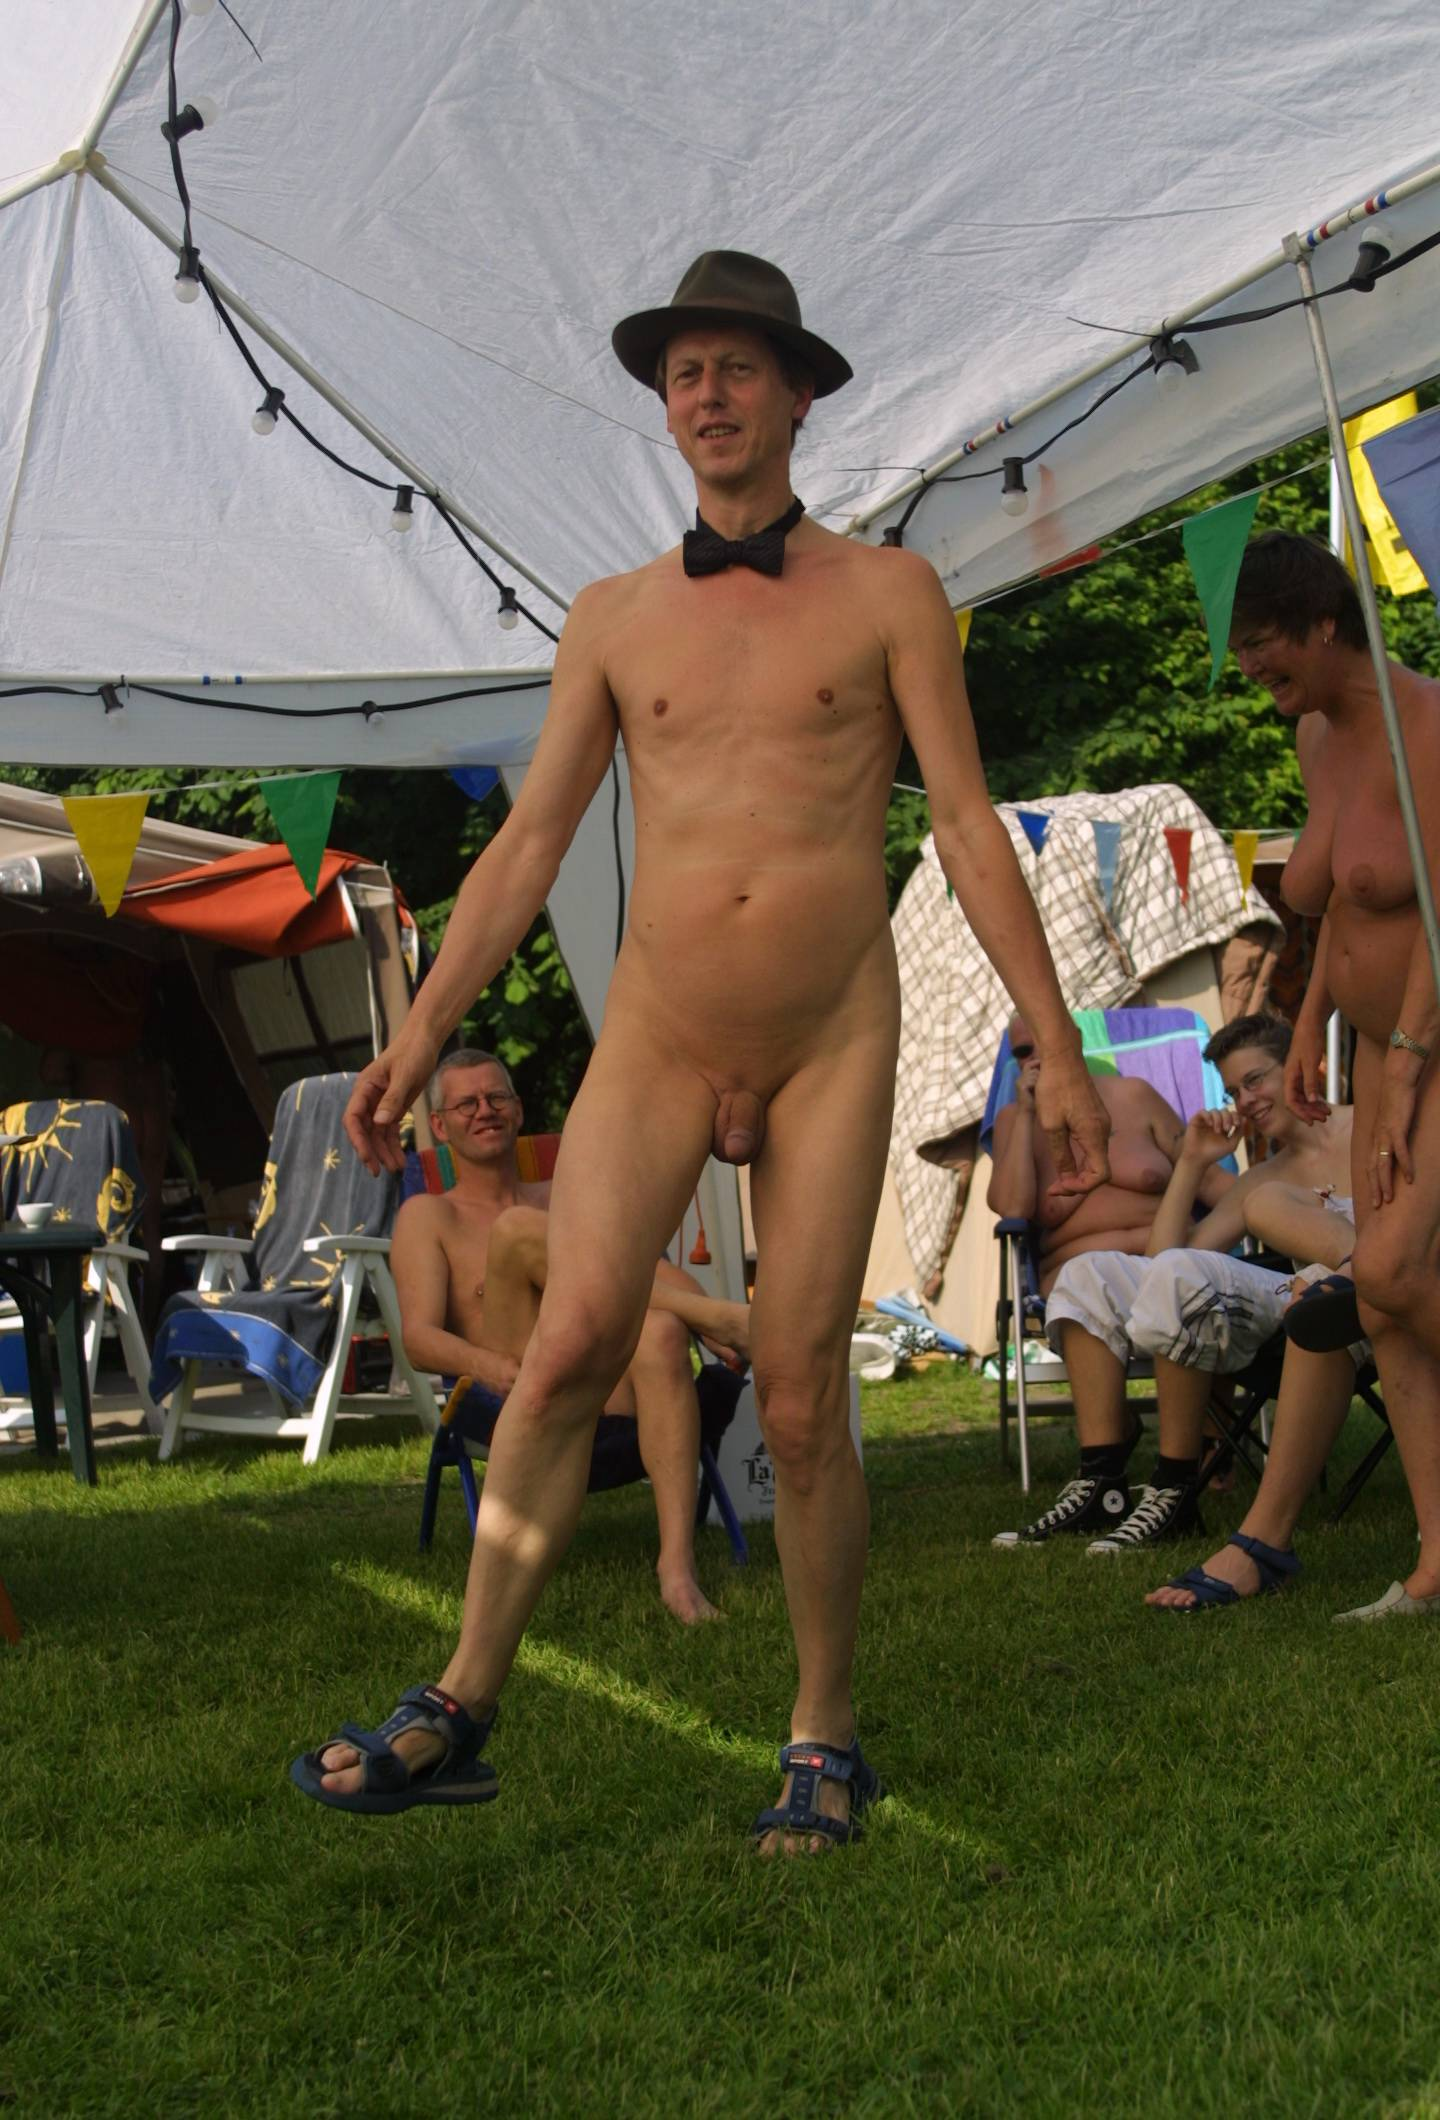 Pure Nudism-Holland Show and Relaxation - 2